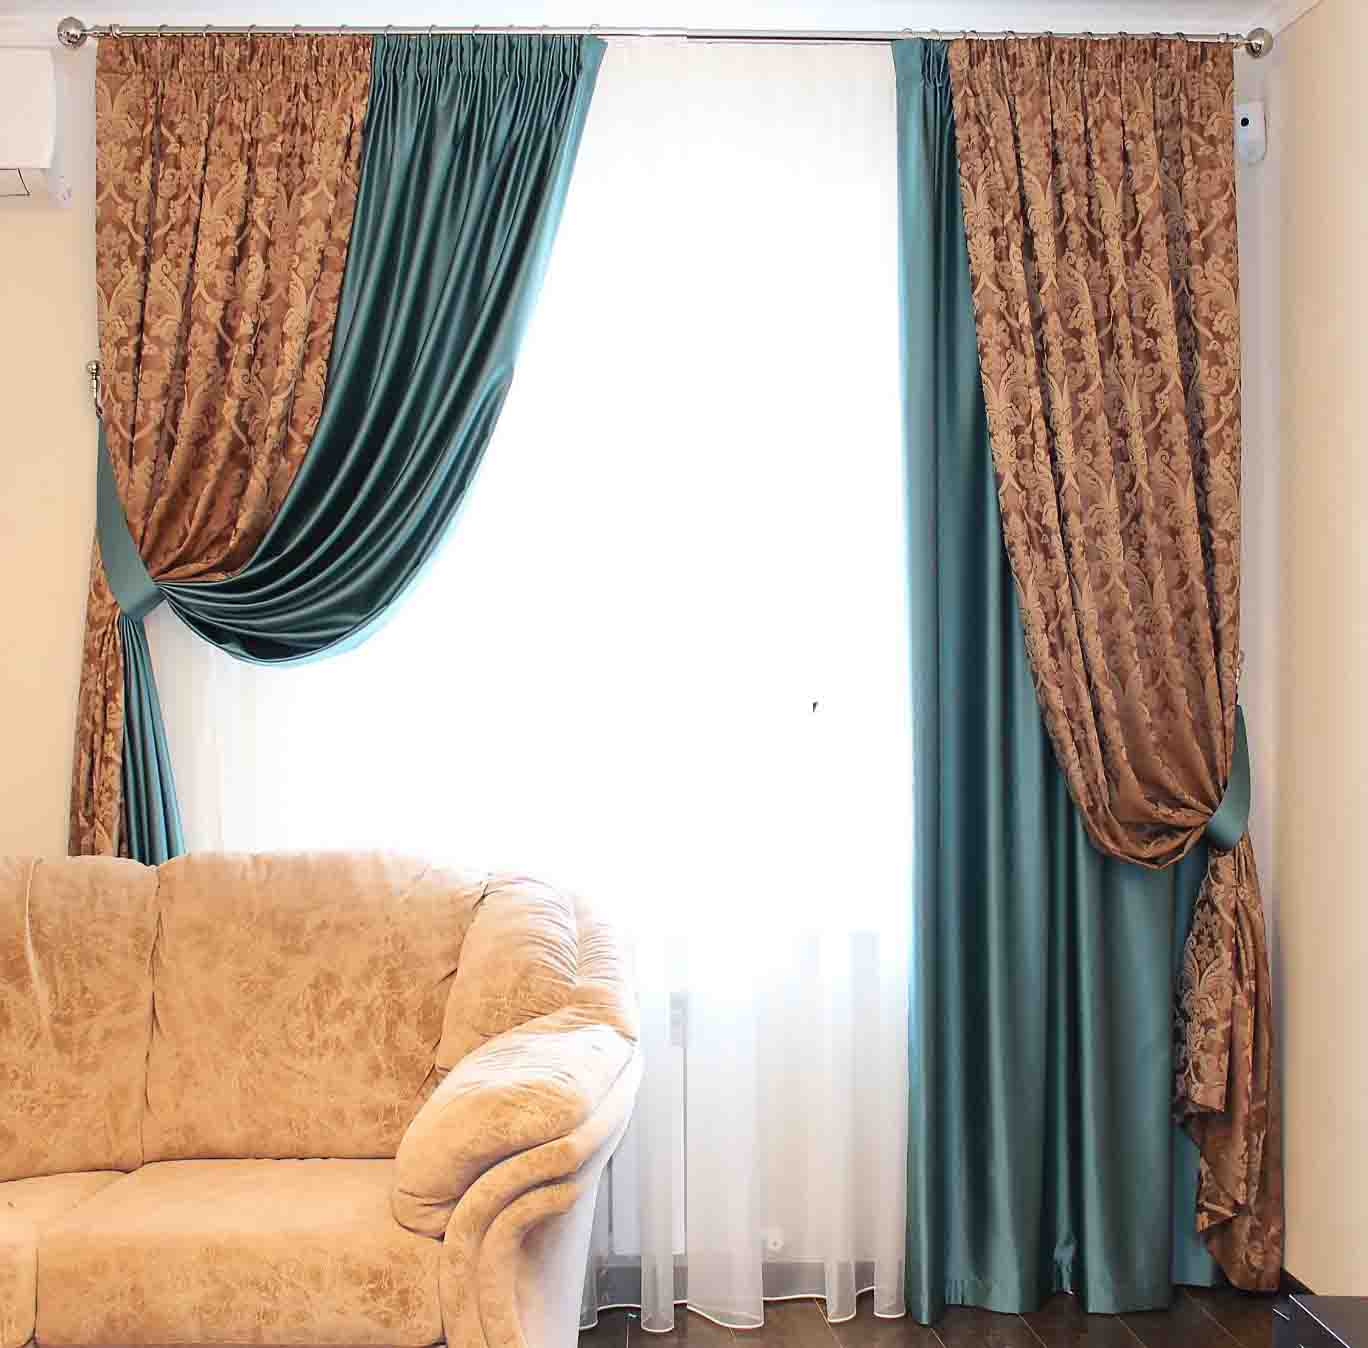 provides window this it and feeling besides treatments fresh curtain design room cheerful for elegant model living curtains a your home decor modern